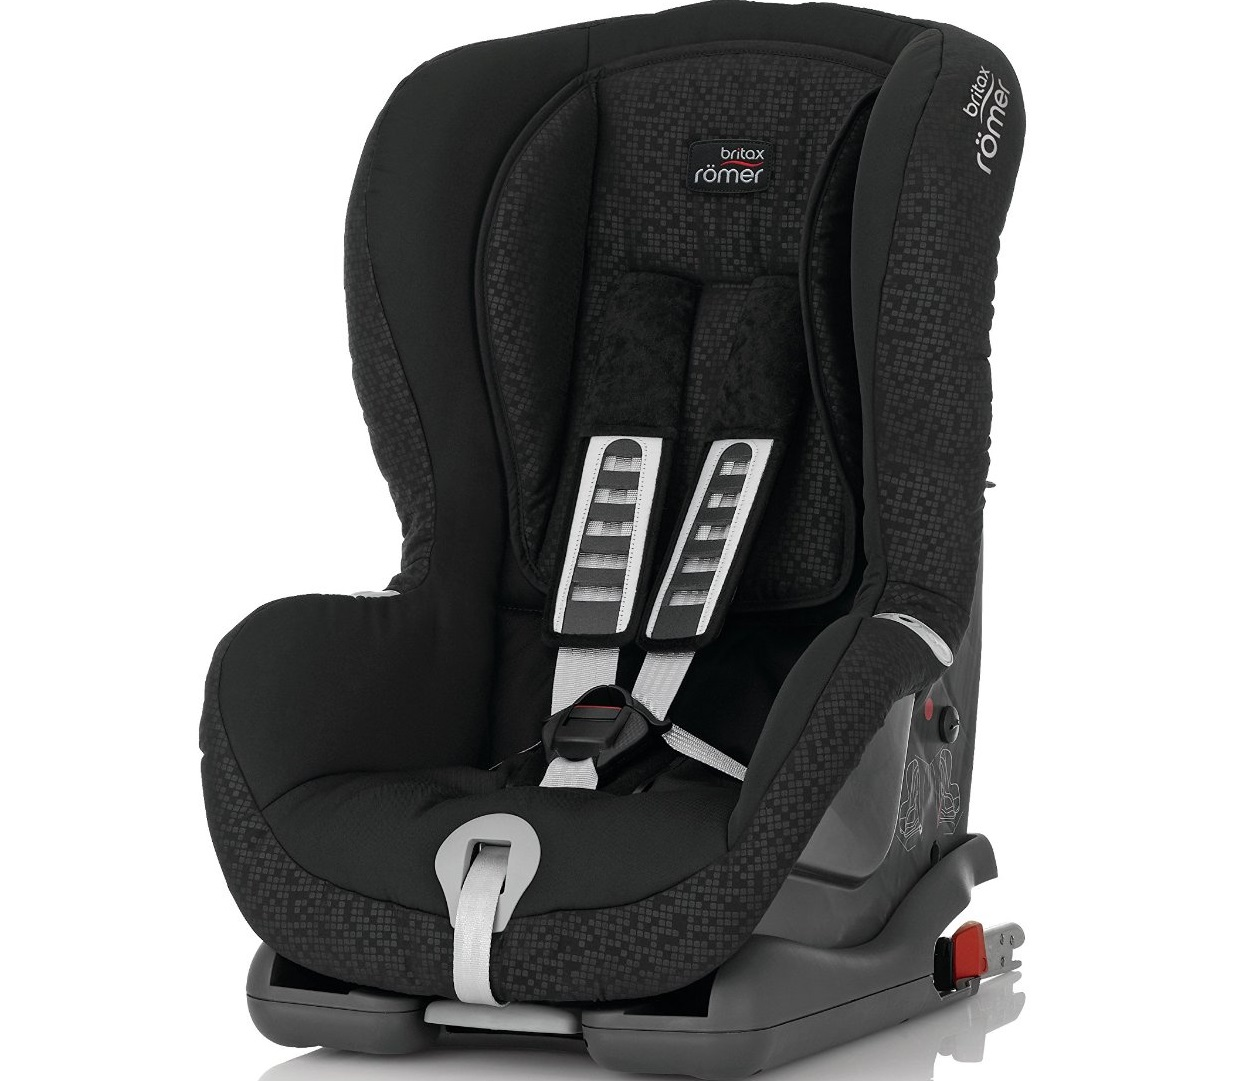 le si ge auto britax r mer duo plus groupe 1 185 au lieu de 360 on ach te. Black Bedroom Furniture Sets. Home Design Ideas